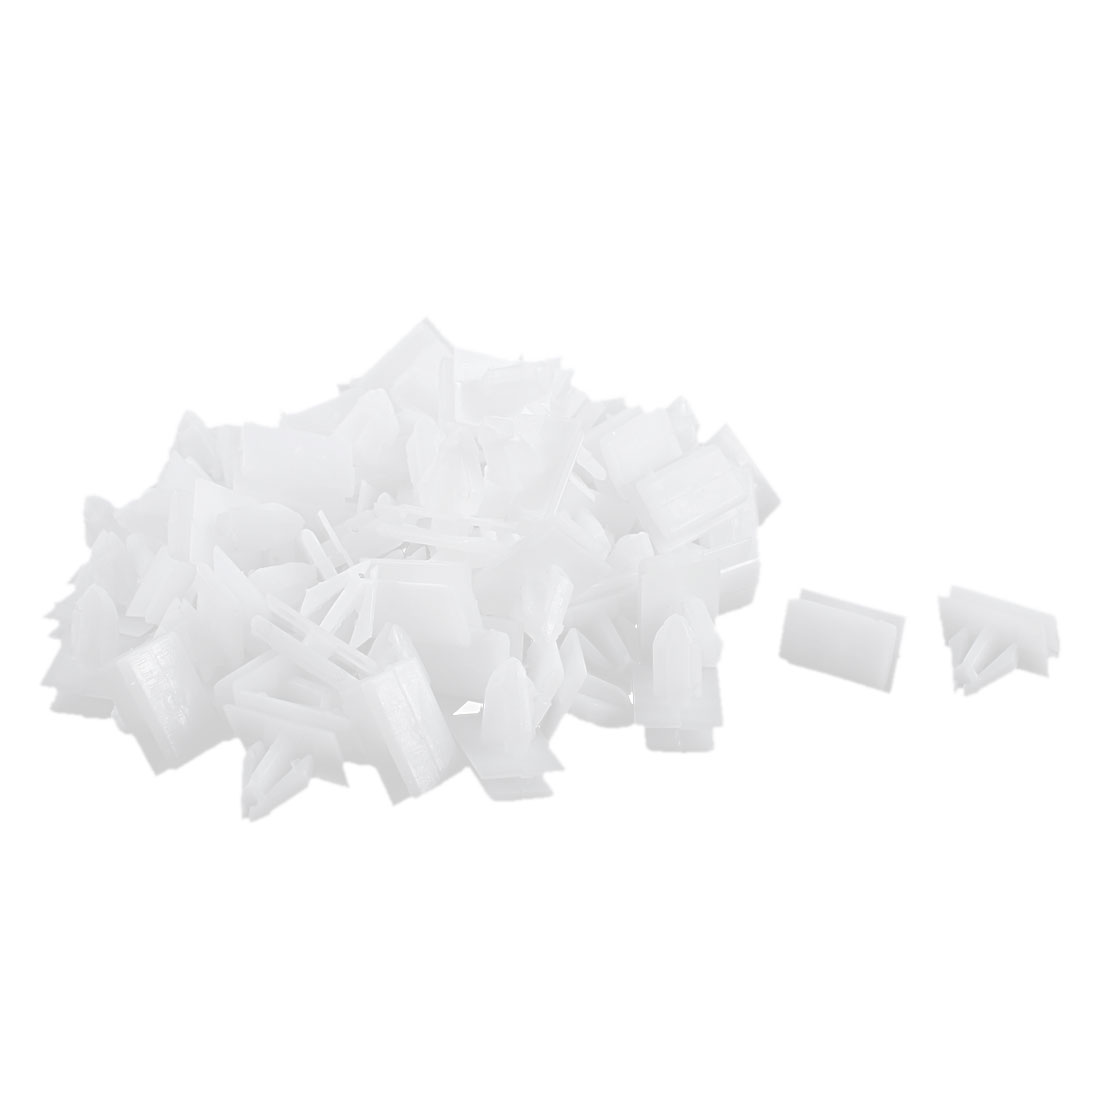 80 Pcs White Plastic Splash Defender Push-Type Trim Mat Rivet for Buick Excelle